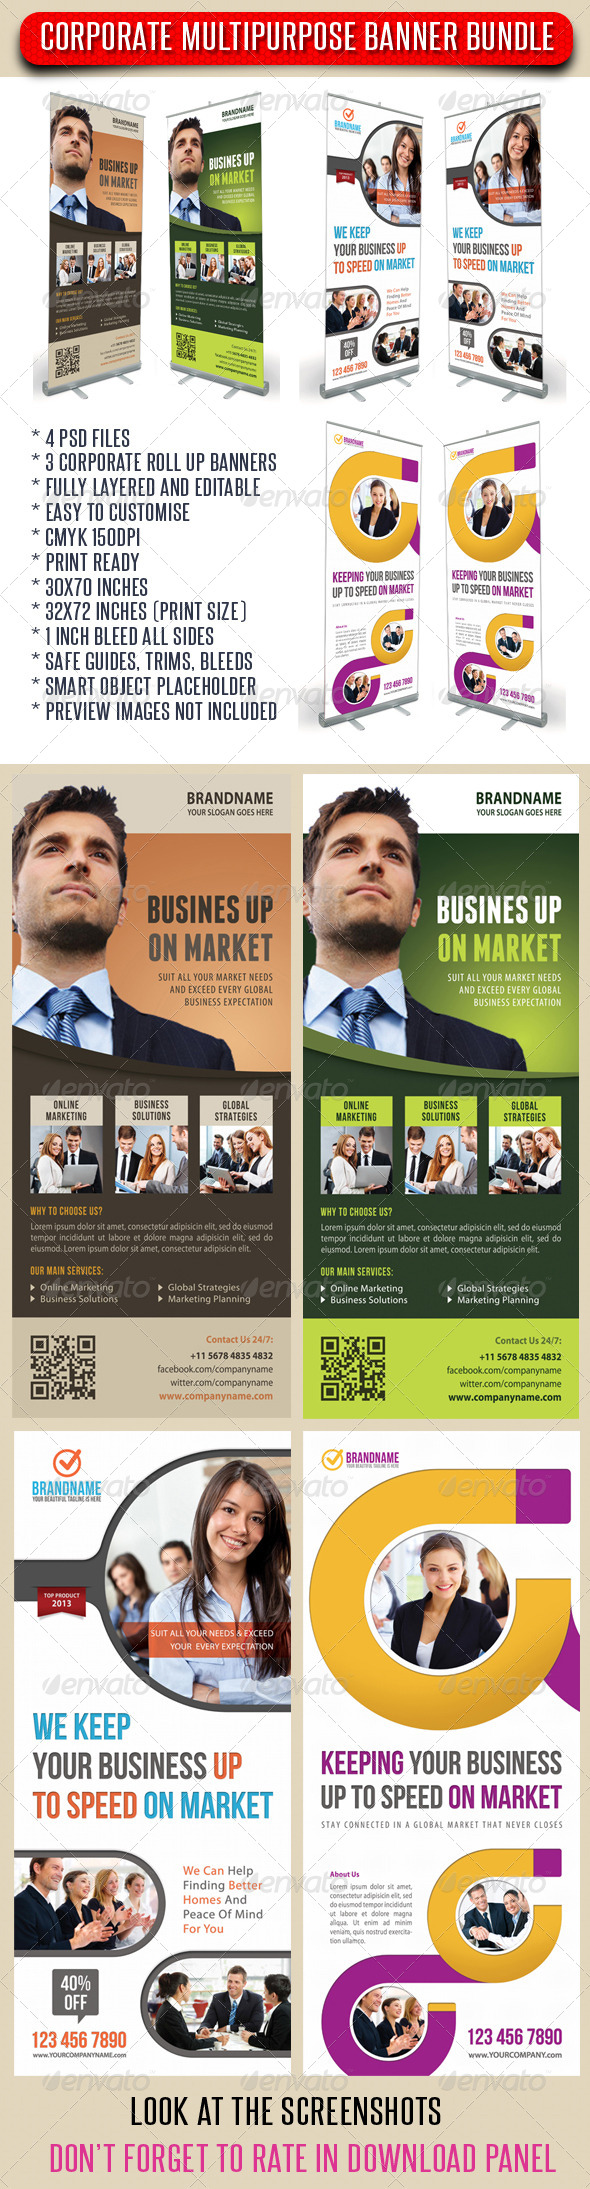 GraphicRiver 3 in 1 Corporate Rollup Banner Bunle 10 7353380